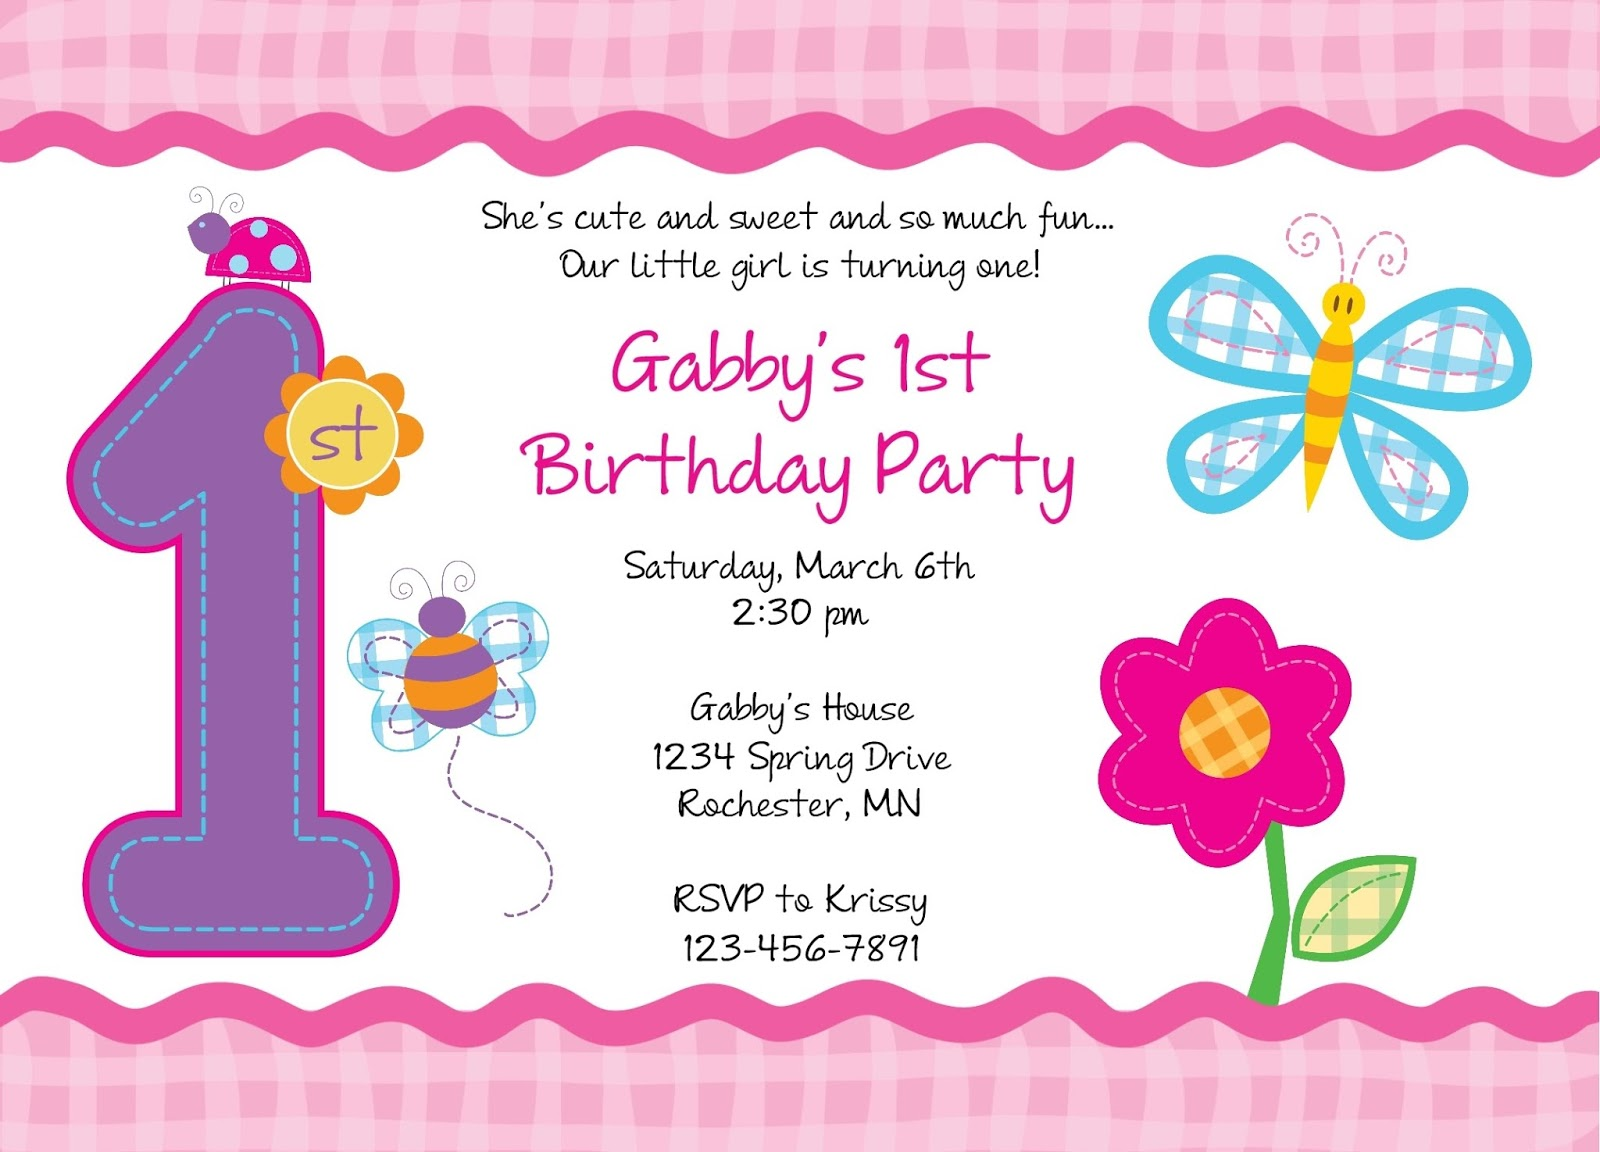 Sterling Digital Invitation BIRTHDAY INVITATION - Free online invitation cards for birthday party